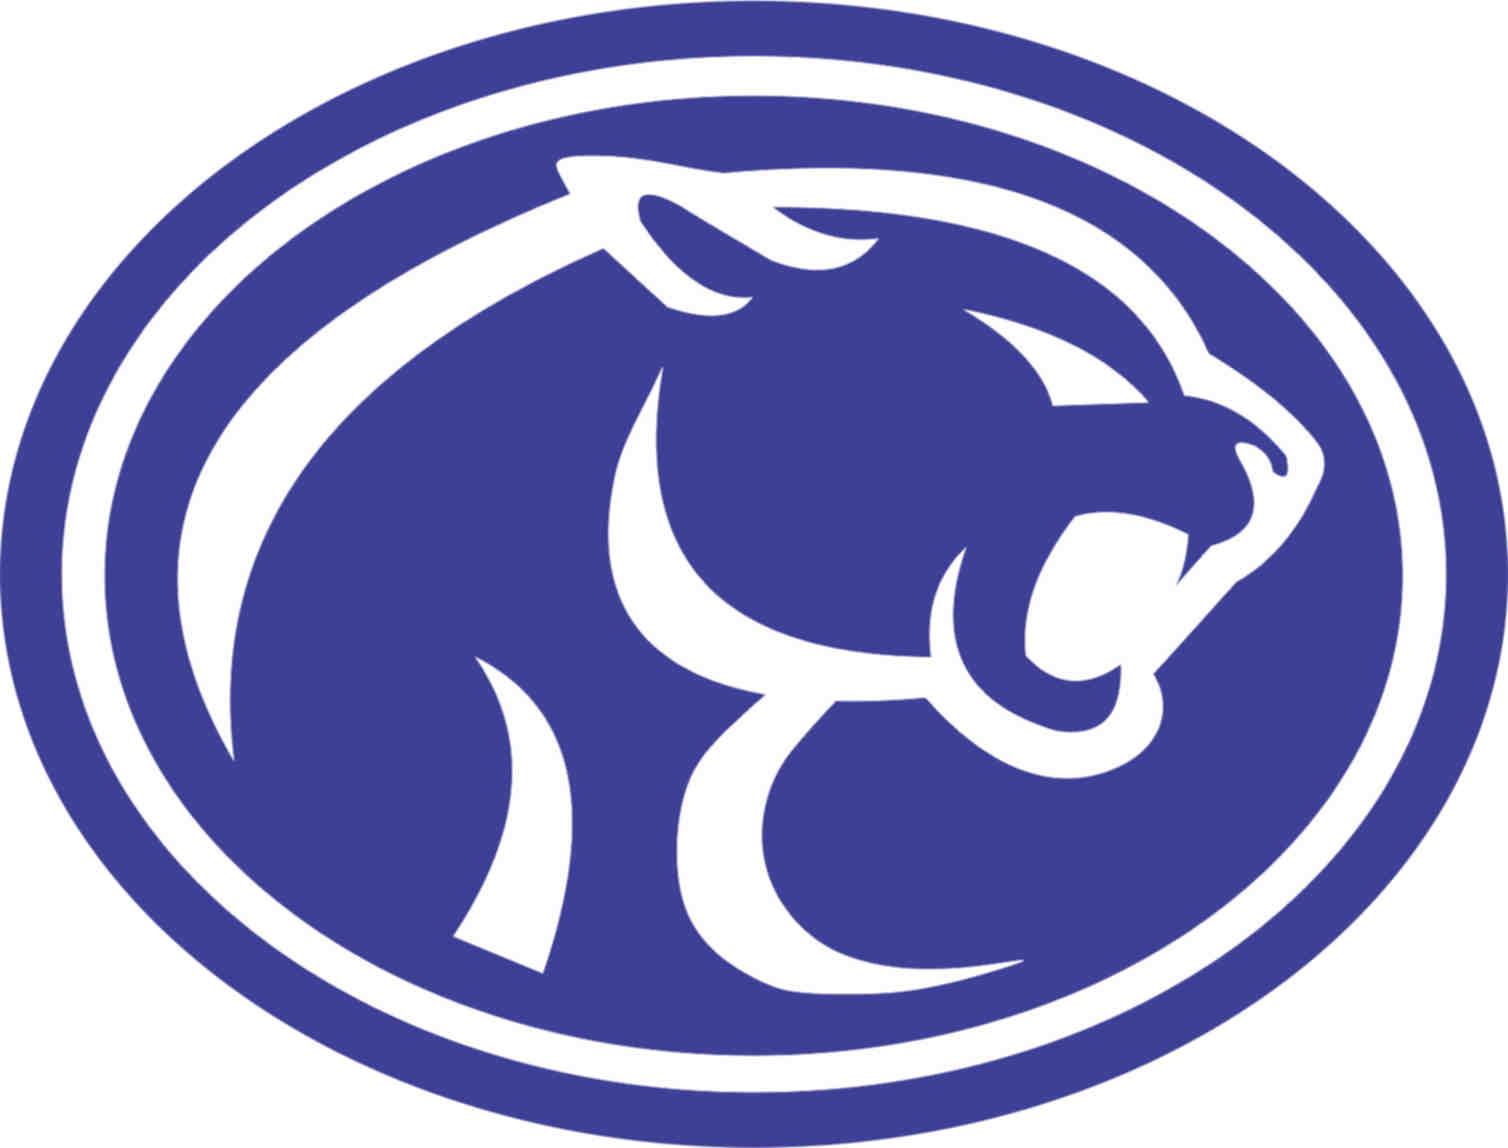 Cougar Car Logo Www Pixshark Com Images Galleries With